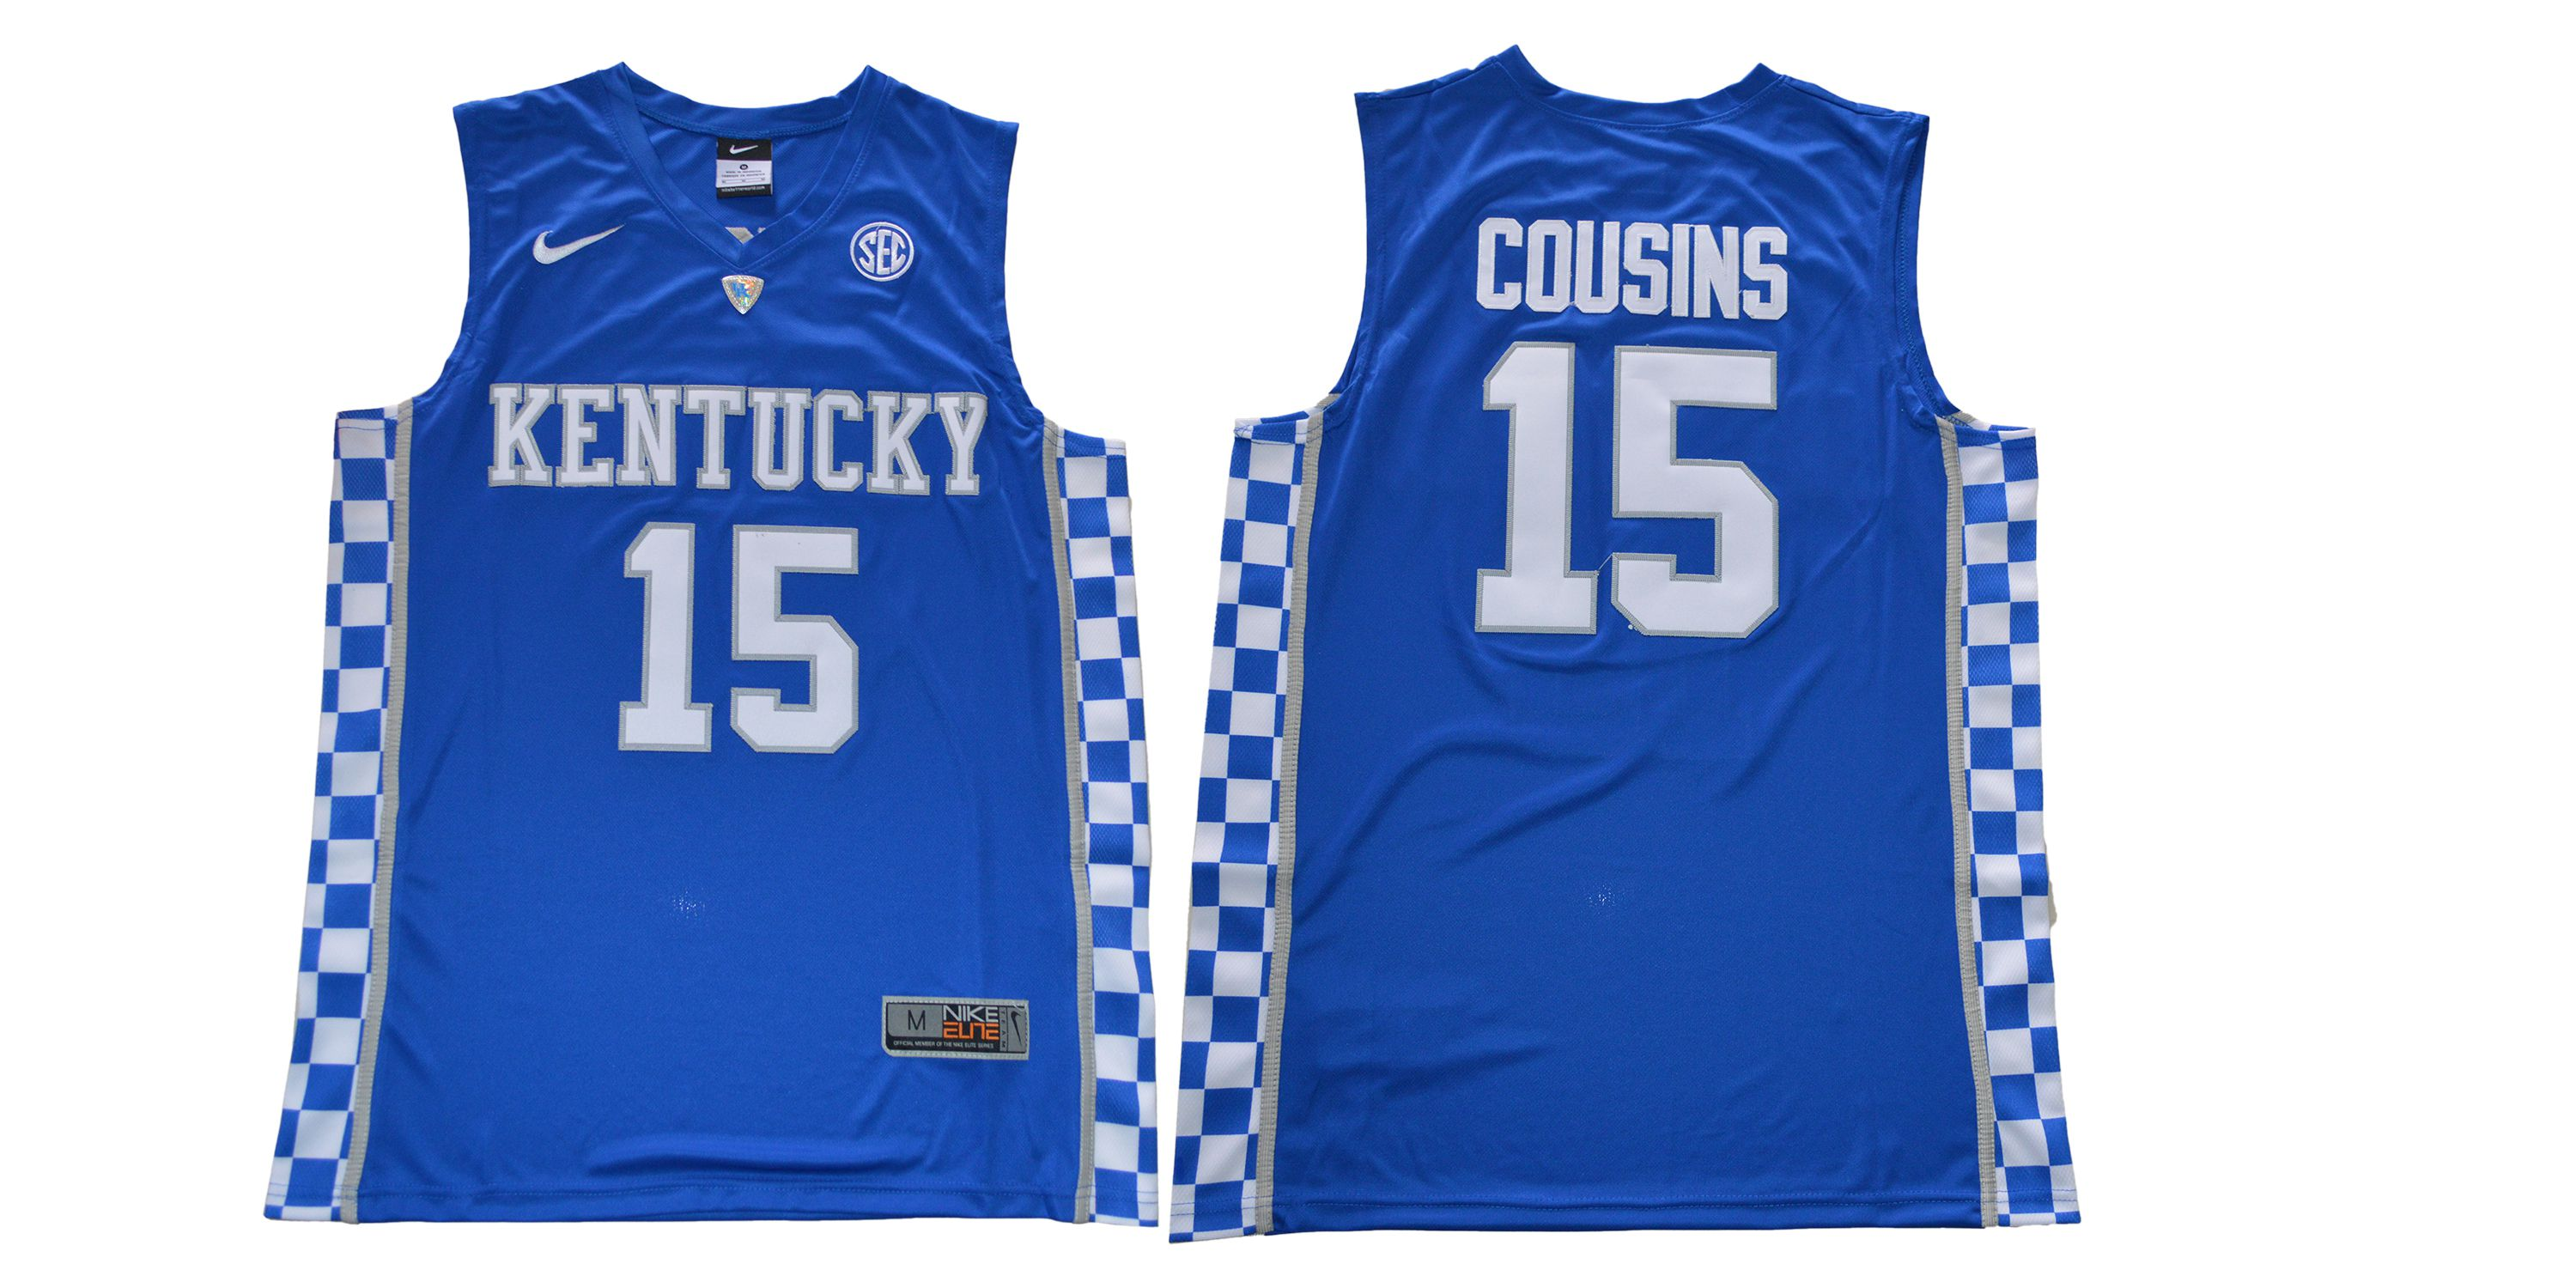 Men Kentucky Wildcats 15 Cousins Blue NBA NCAA Jerseys